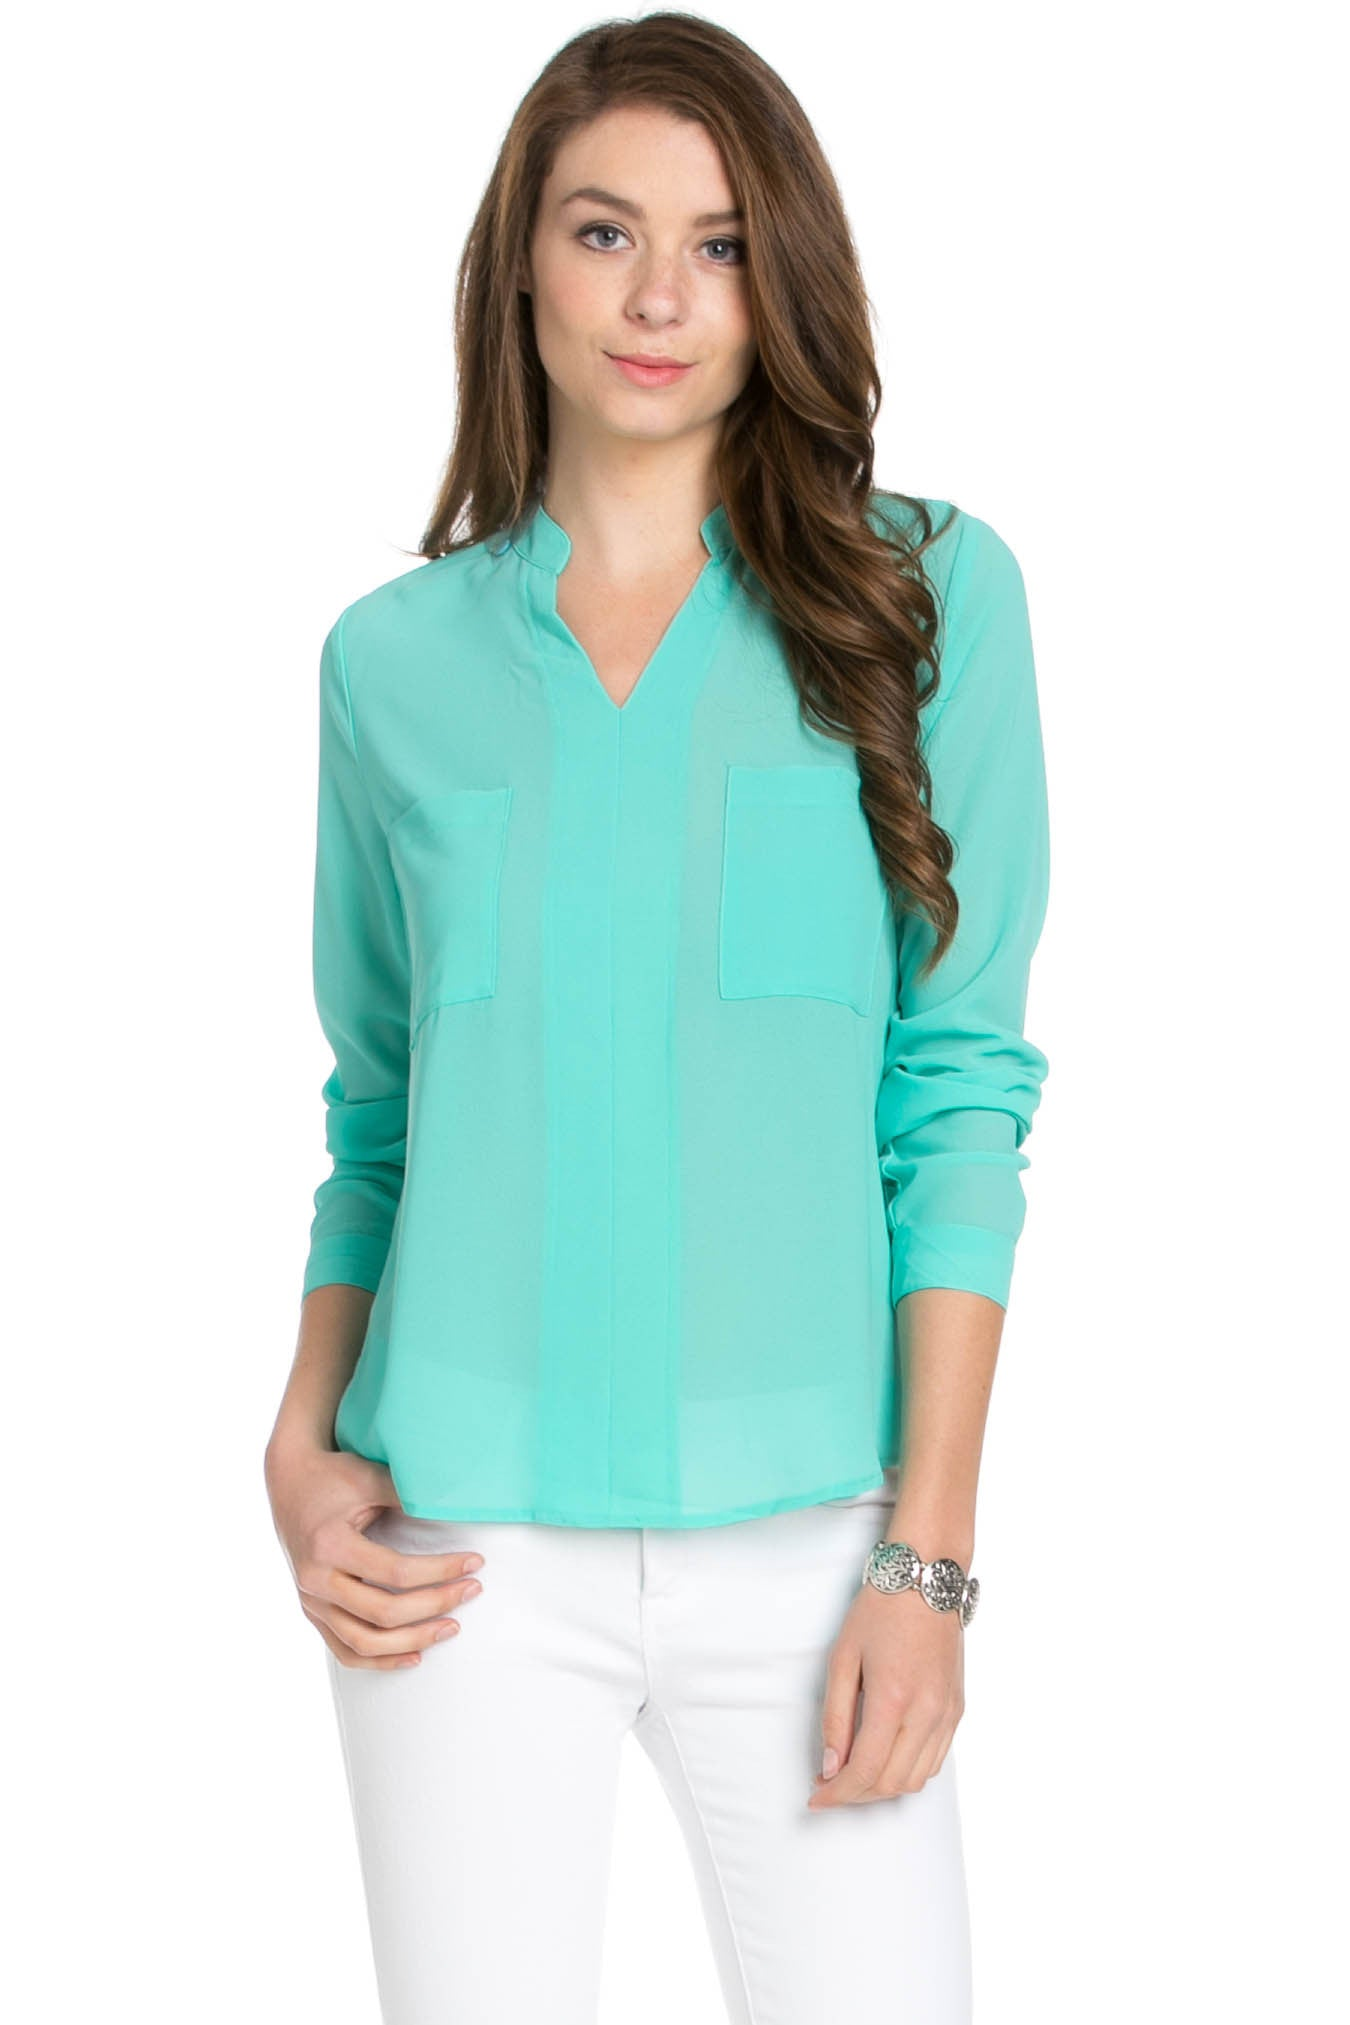 V-Neck Chiffon Blouse Mint - Tops - My Yuccie - 1